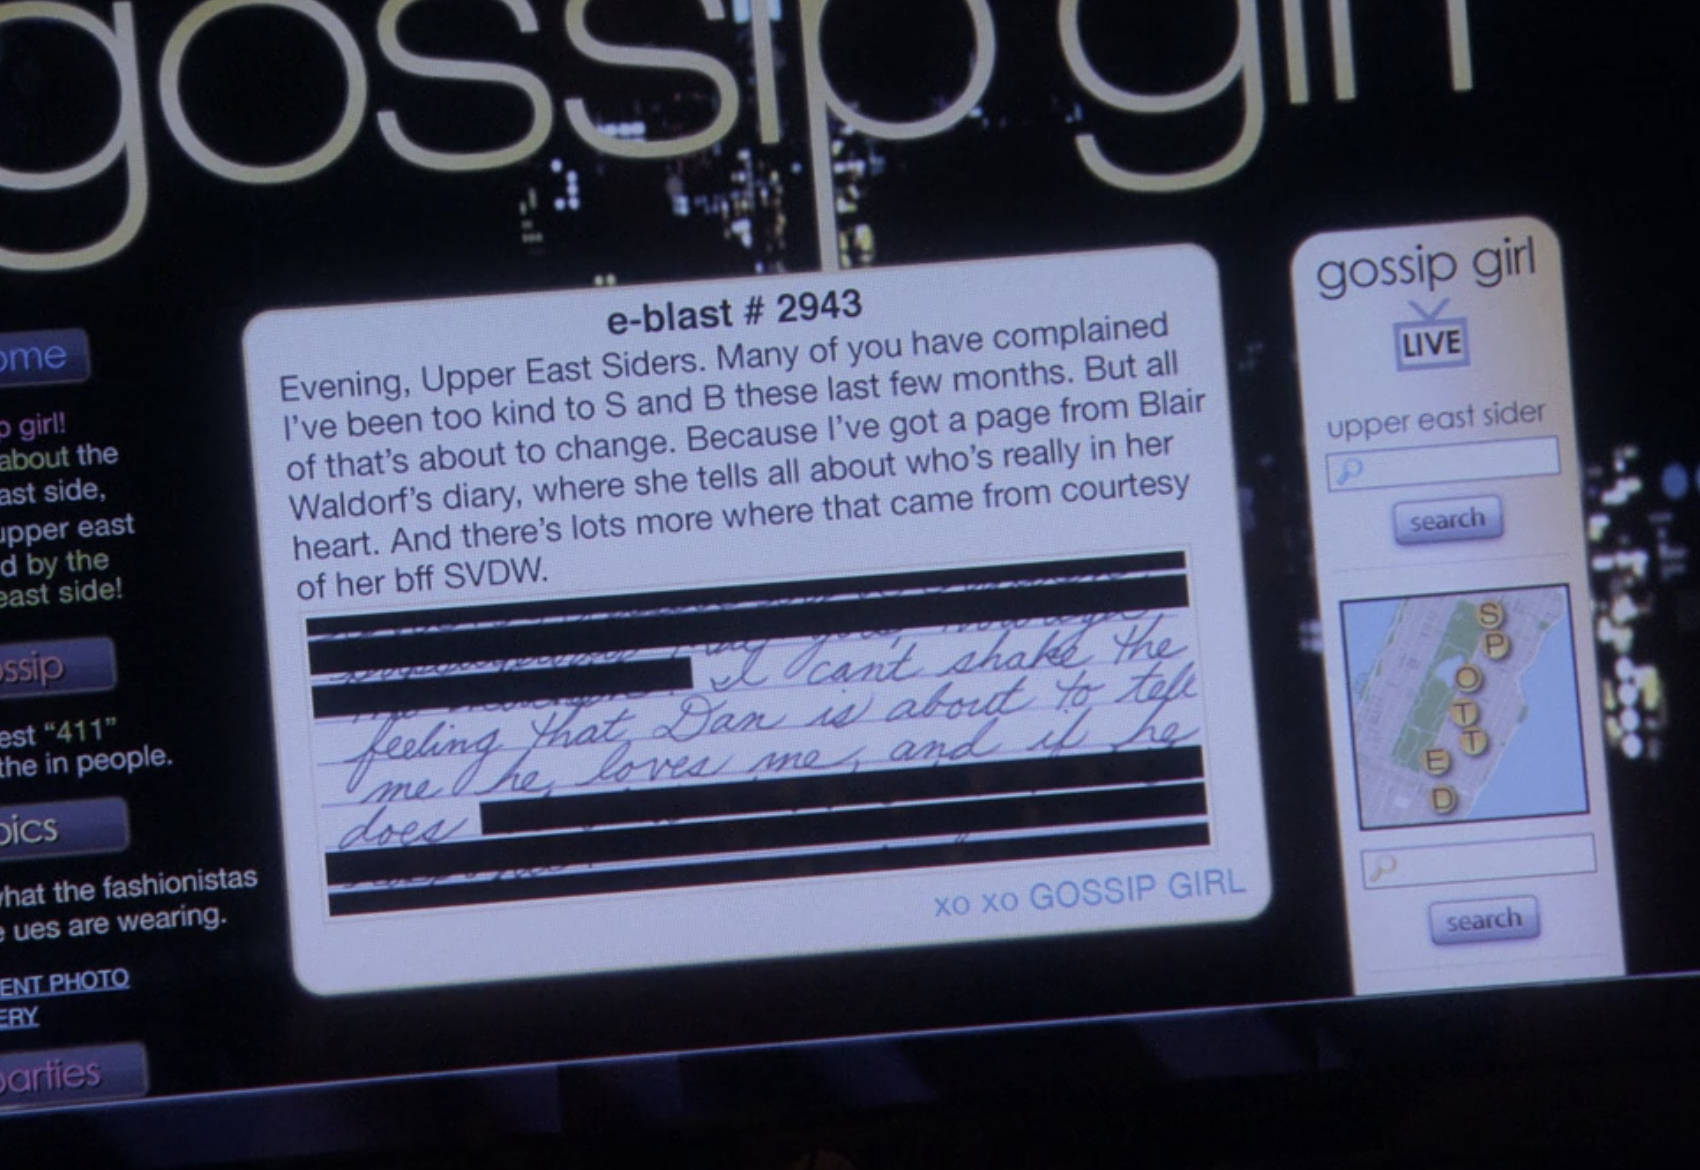 Gossip Girl homepage with a picture of Blair's diary